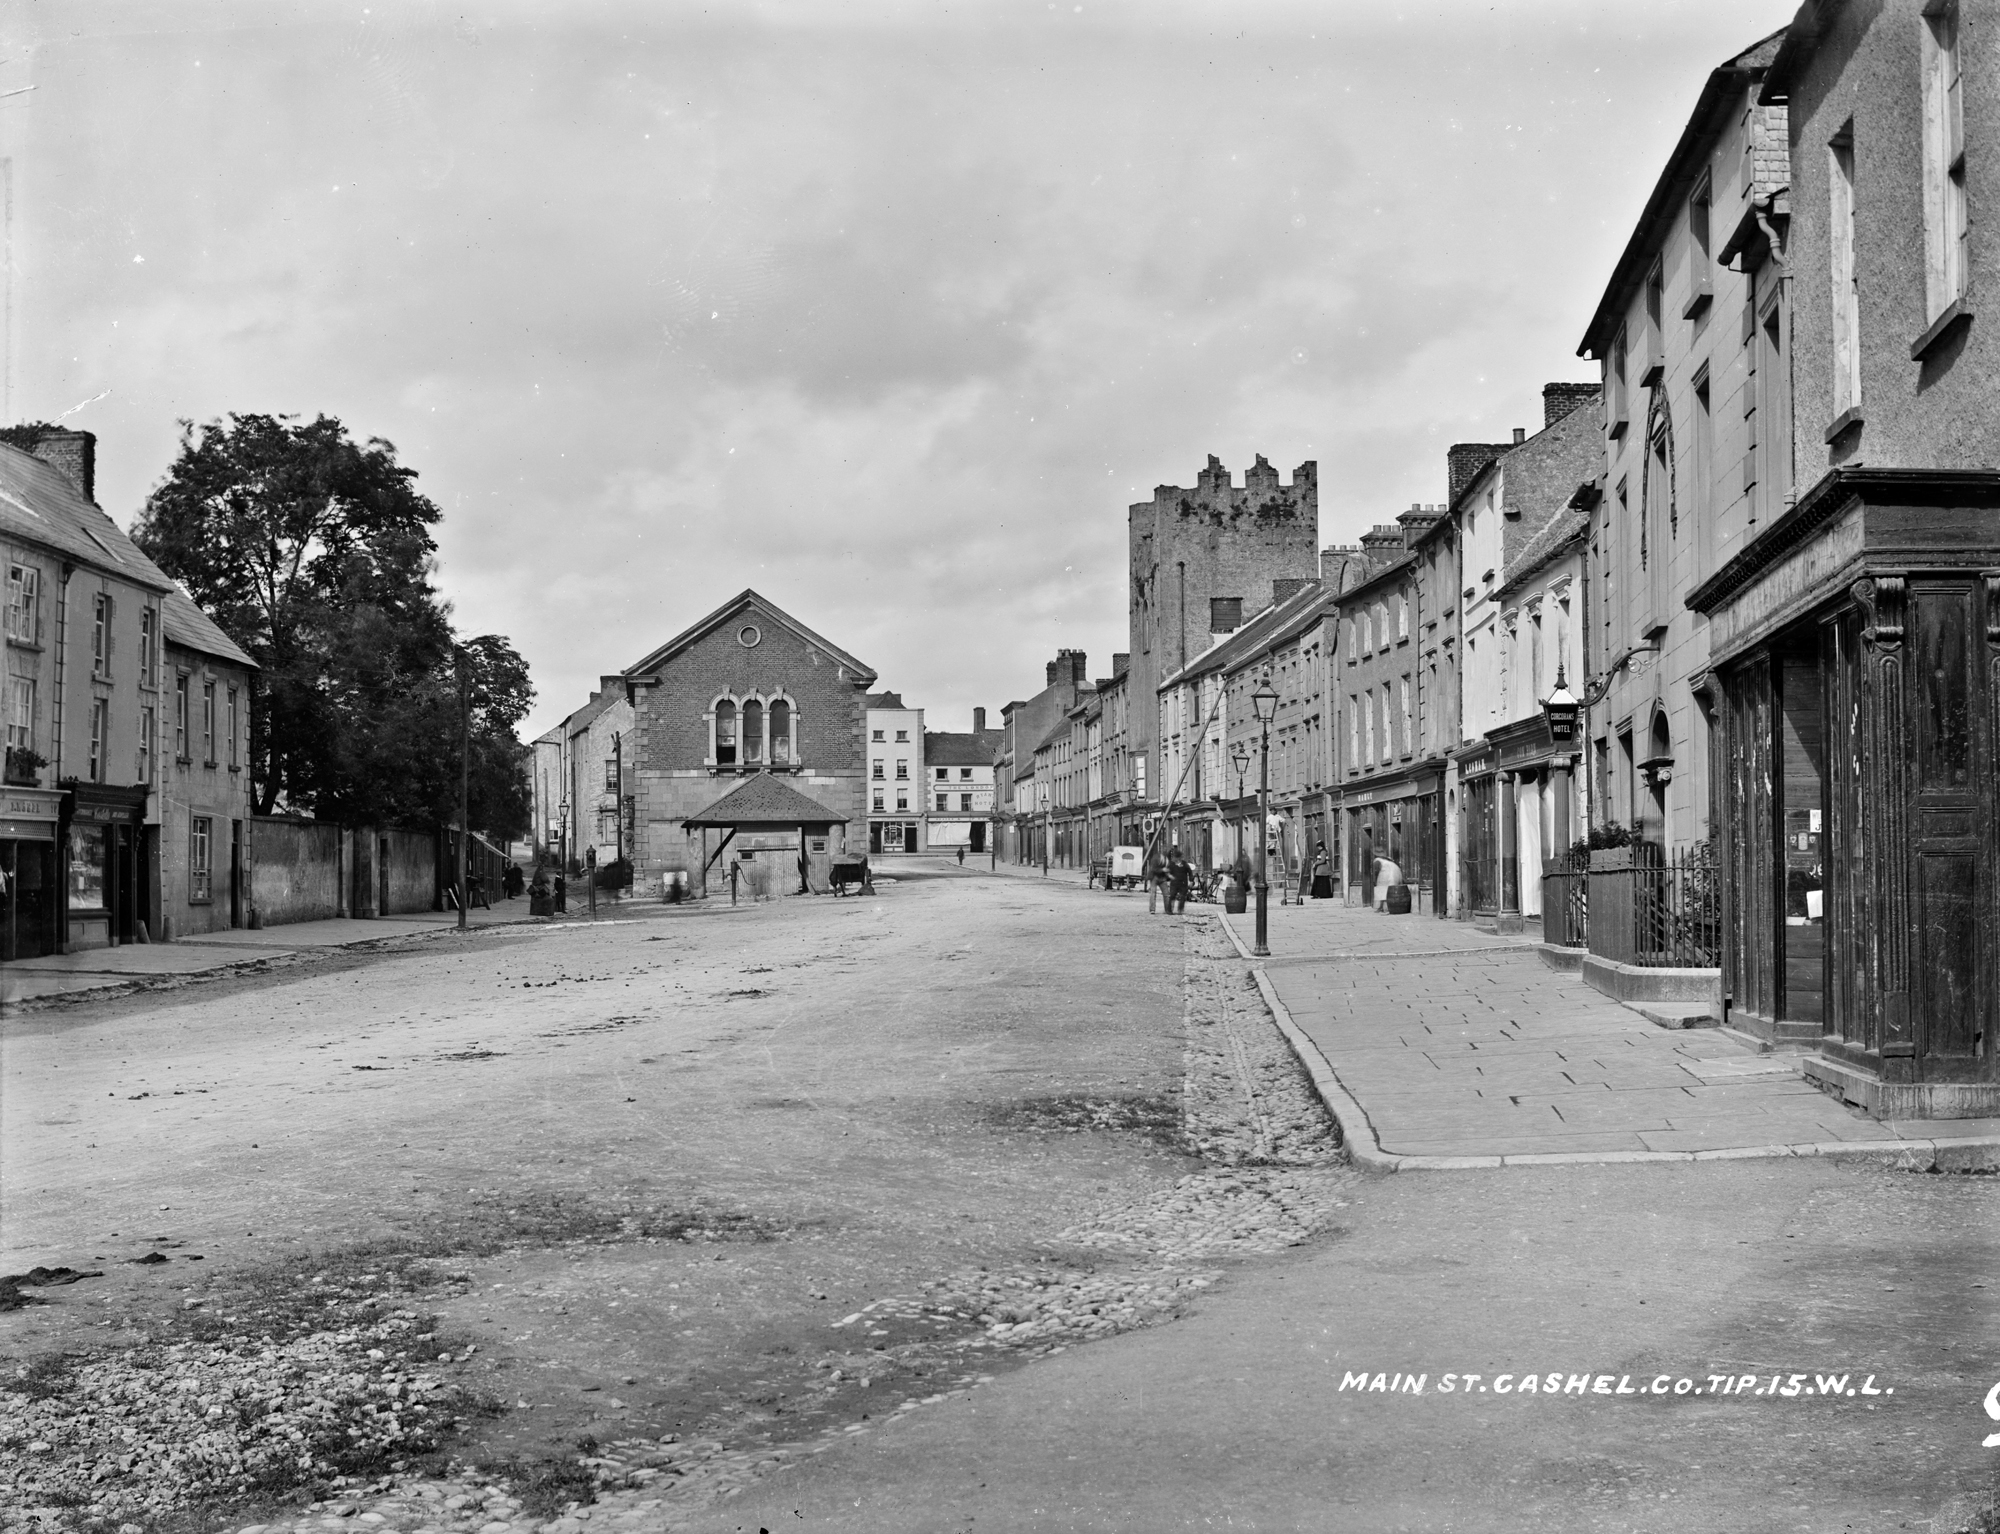 Main Street, Cashel, Co. Tipperary